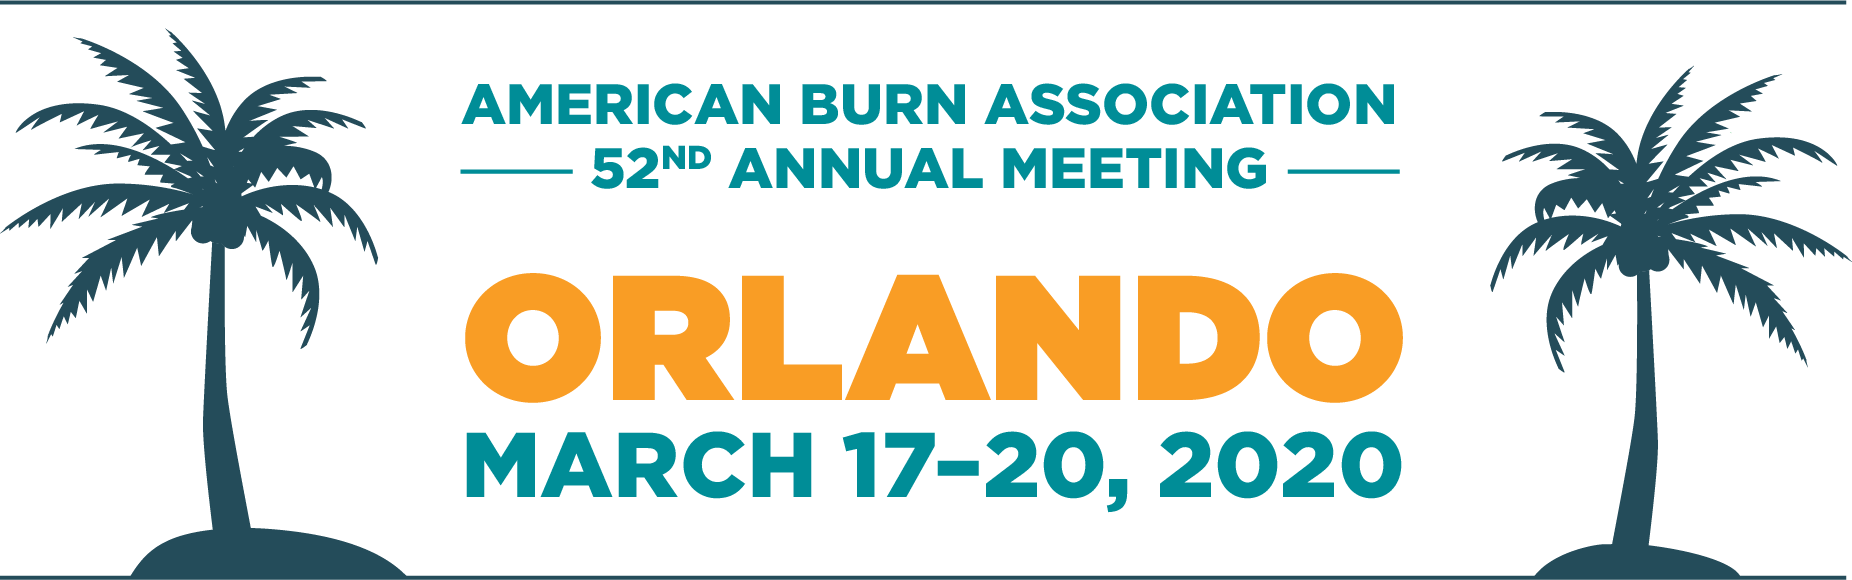 ABA Annual Meeting 2020